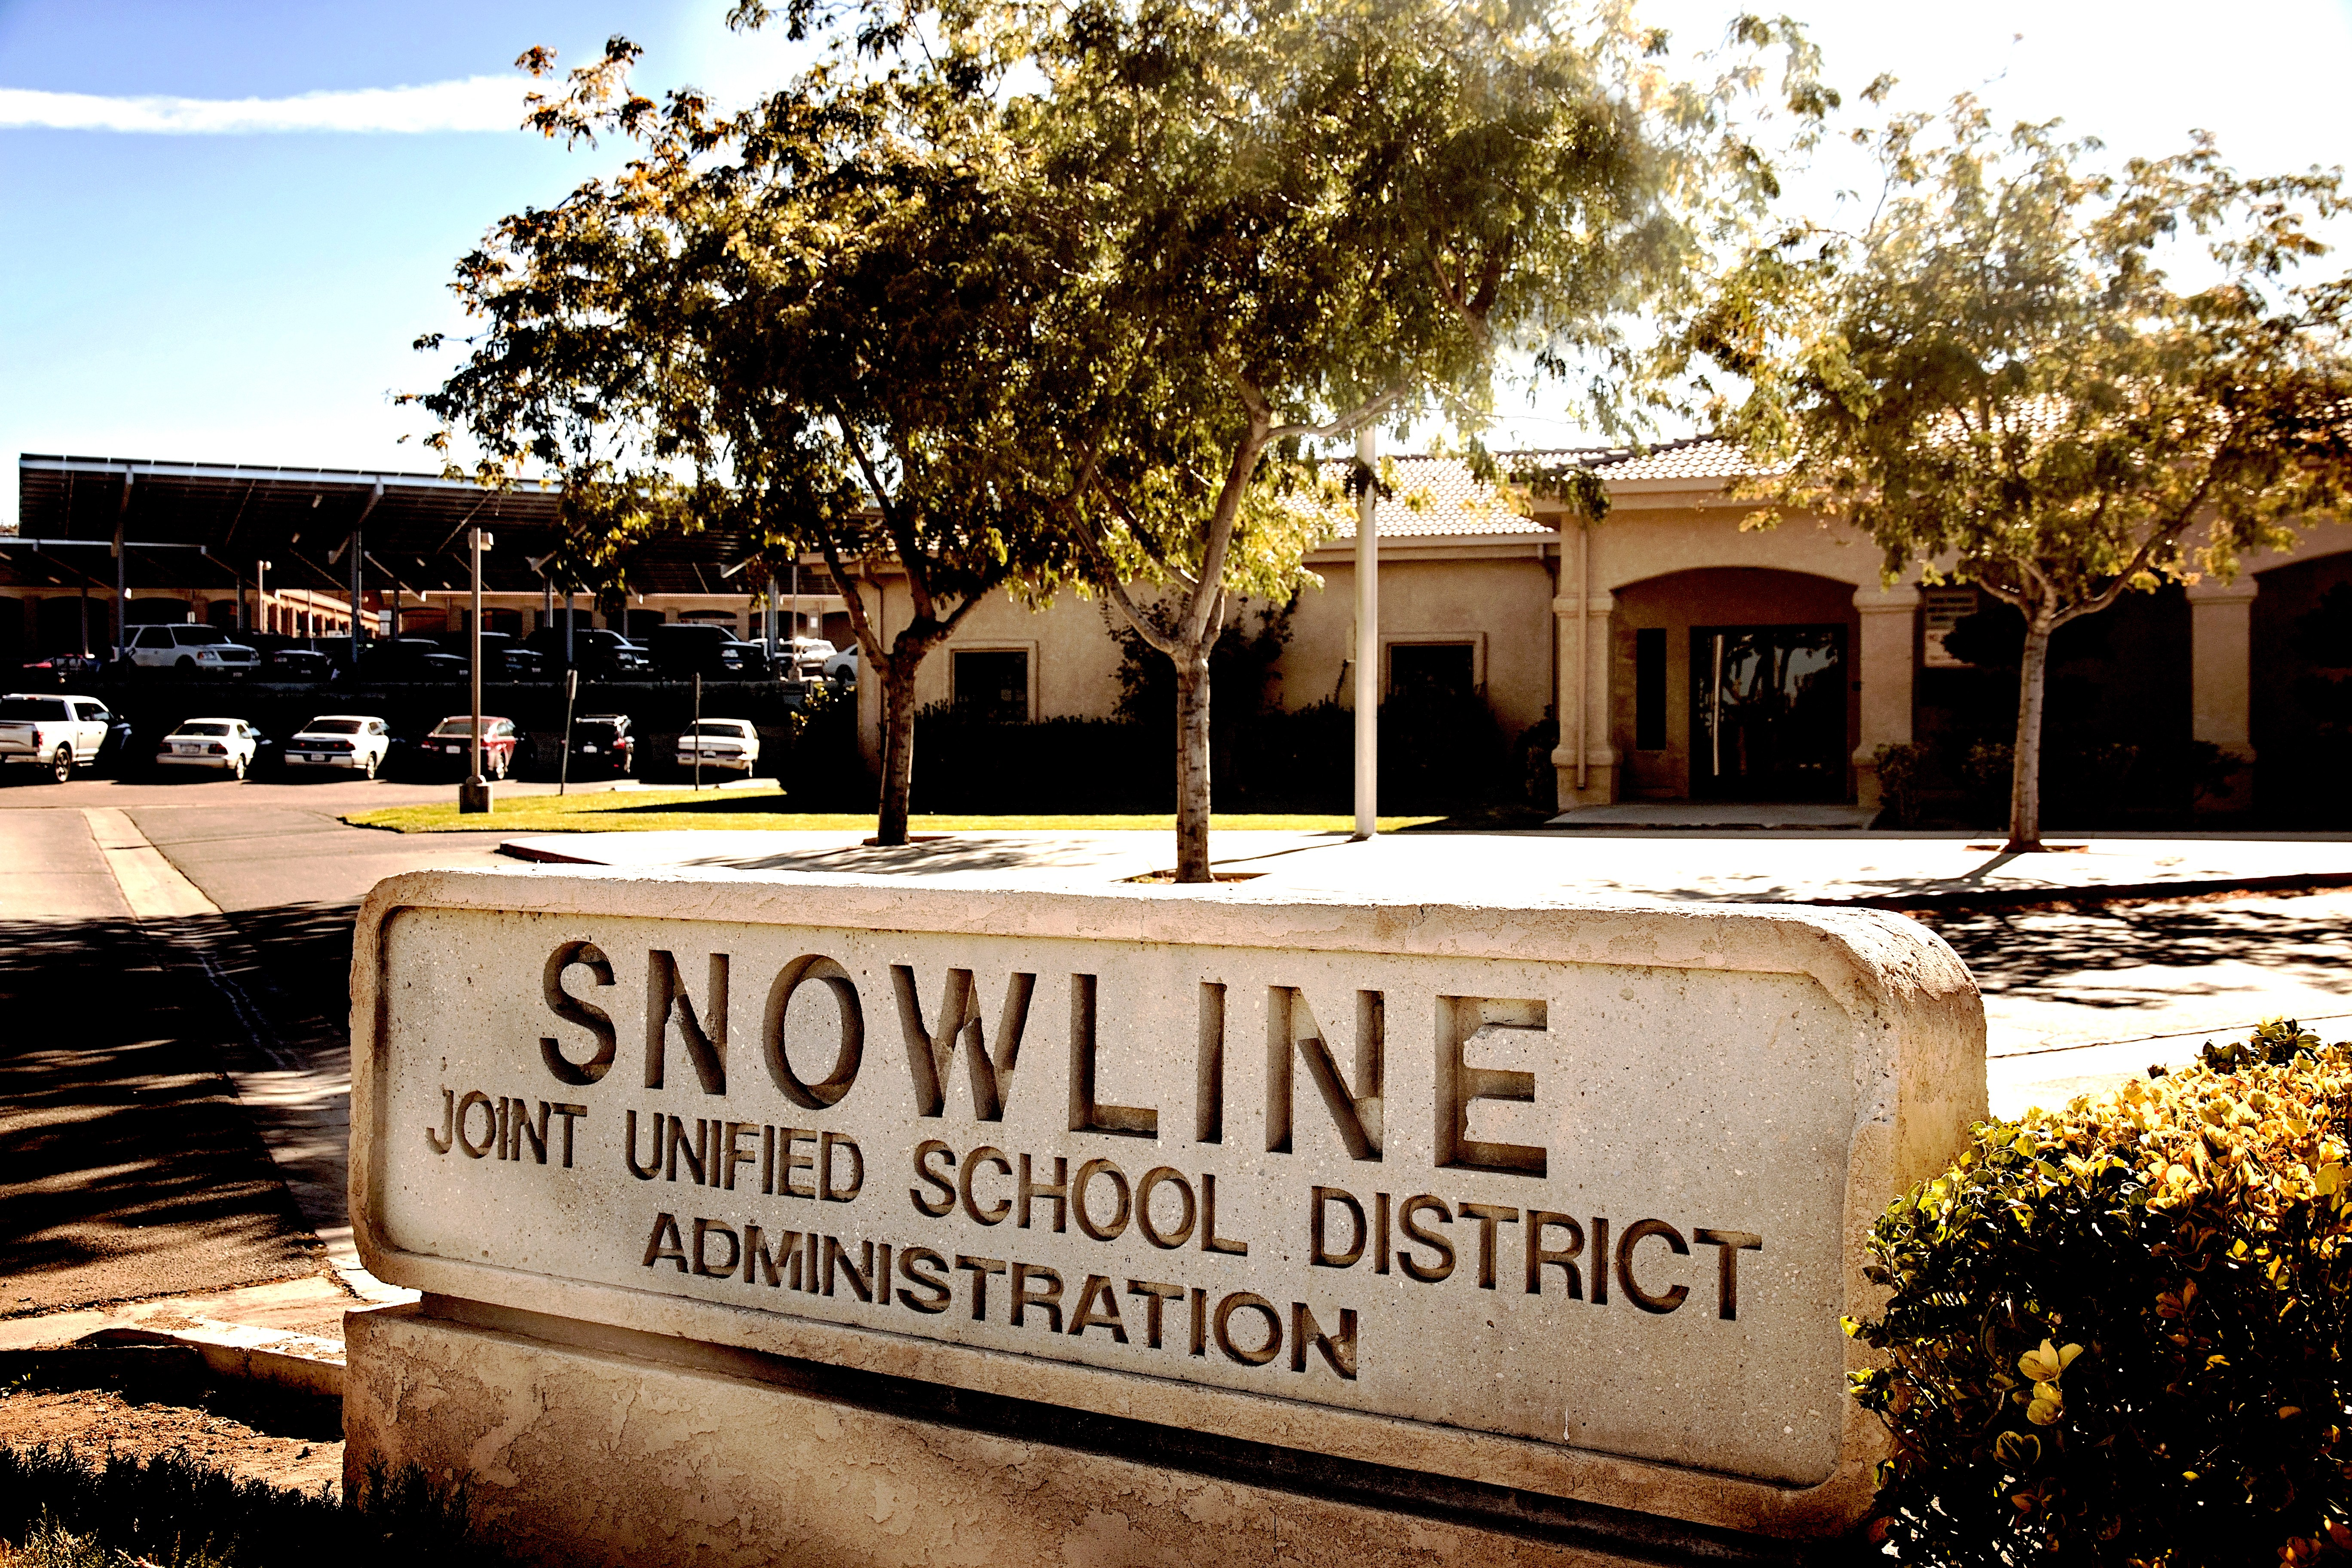 Snowline JUSD Sign